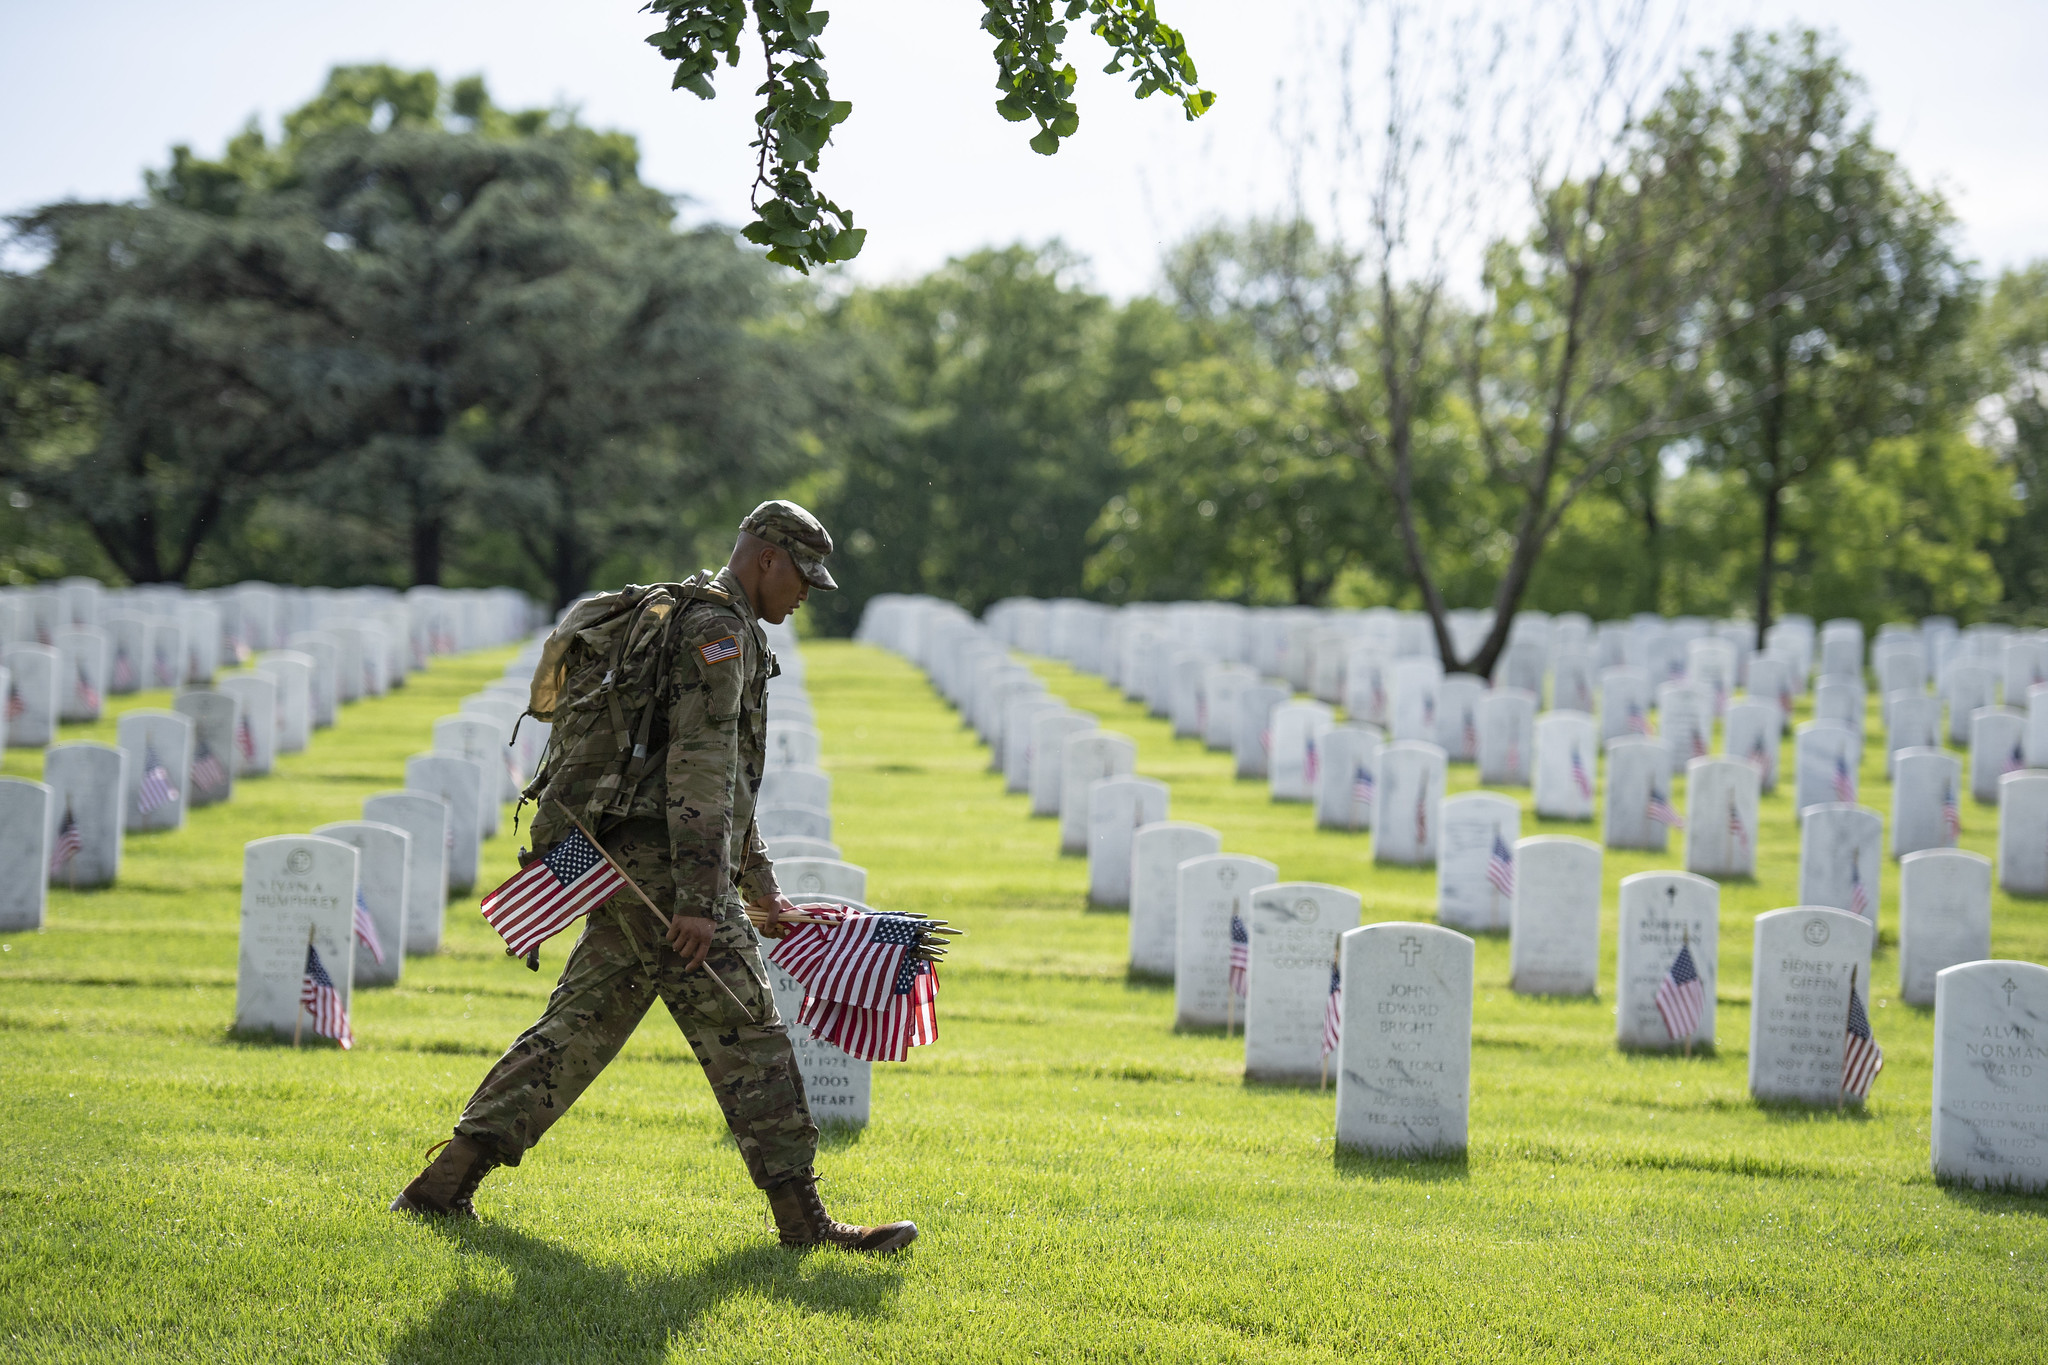 A uniformed soldier places American flags in front of gravestones at Arlington National Cemetery, for Memorial Day